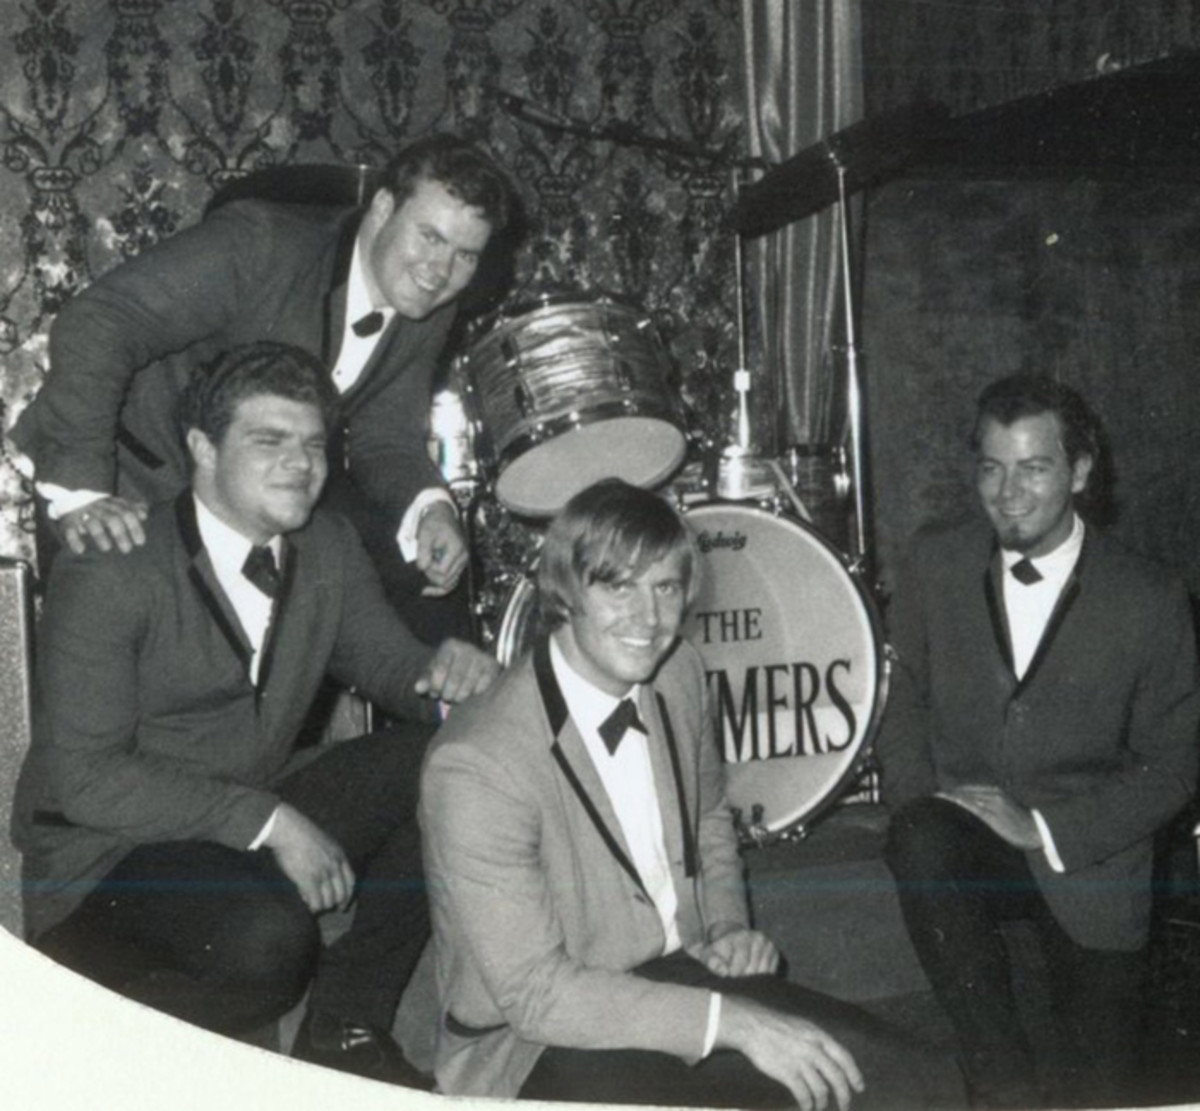 The Brymers (L-R): Kenny Sinner on vocals/keyboards/sax, Jim Mellick on vocals/guitar/harp (standing), Dick Lee on vocals/percussion and Bill Brumley on vocals/bass. Photo courtesy of Dick Lee.